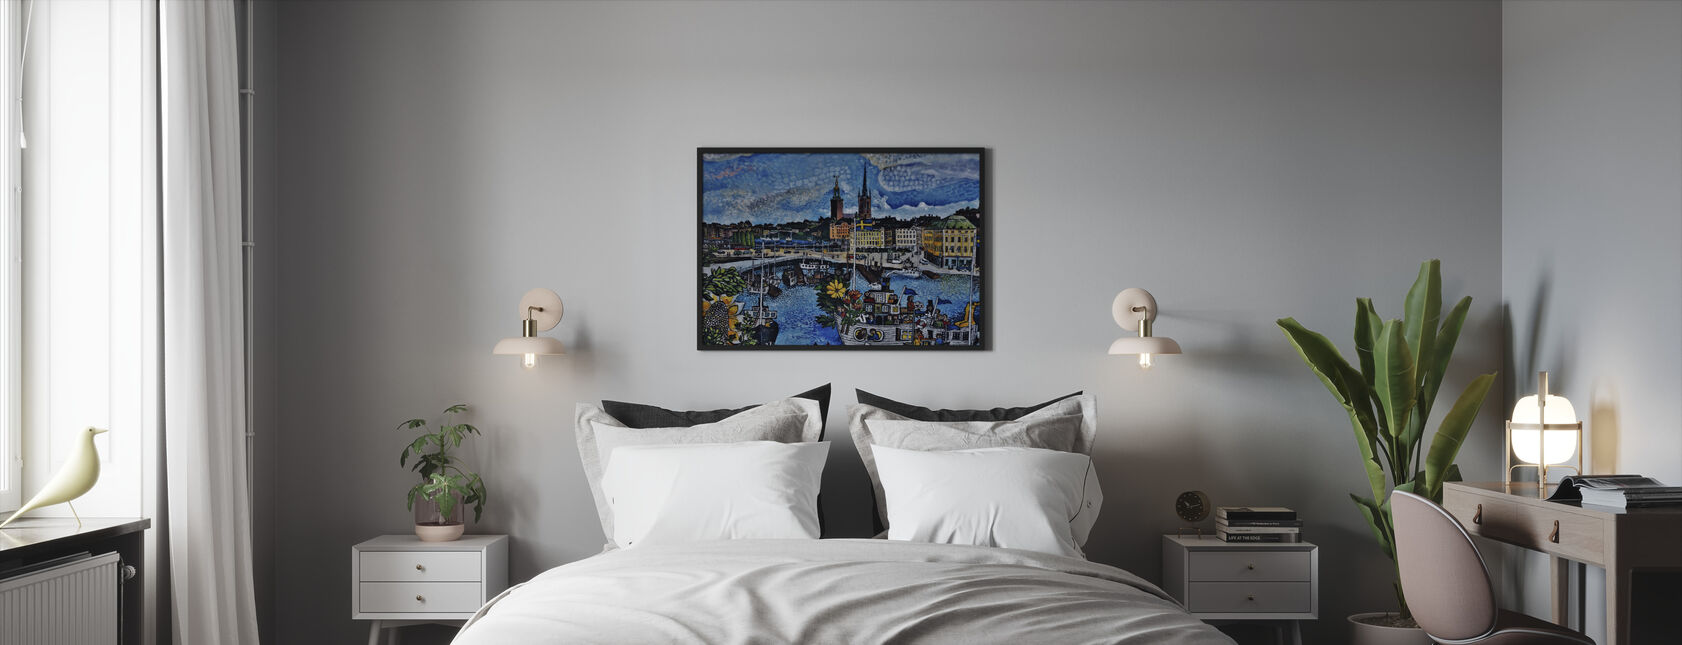 City Pier Painting - Framed print - Bedroom